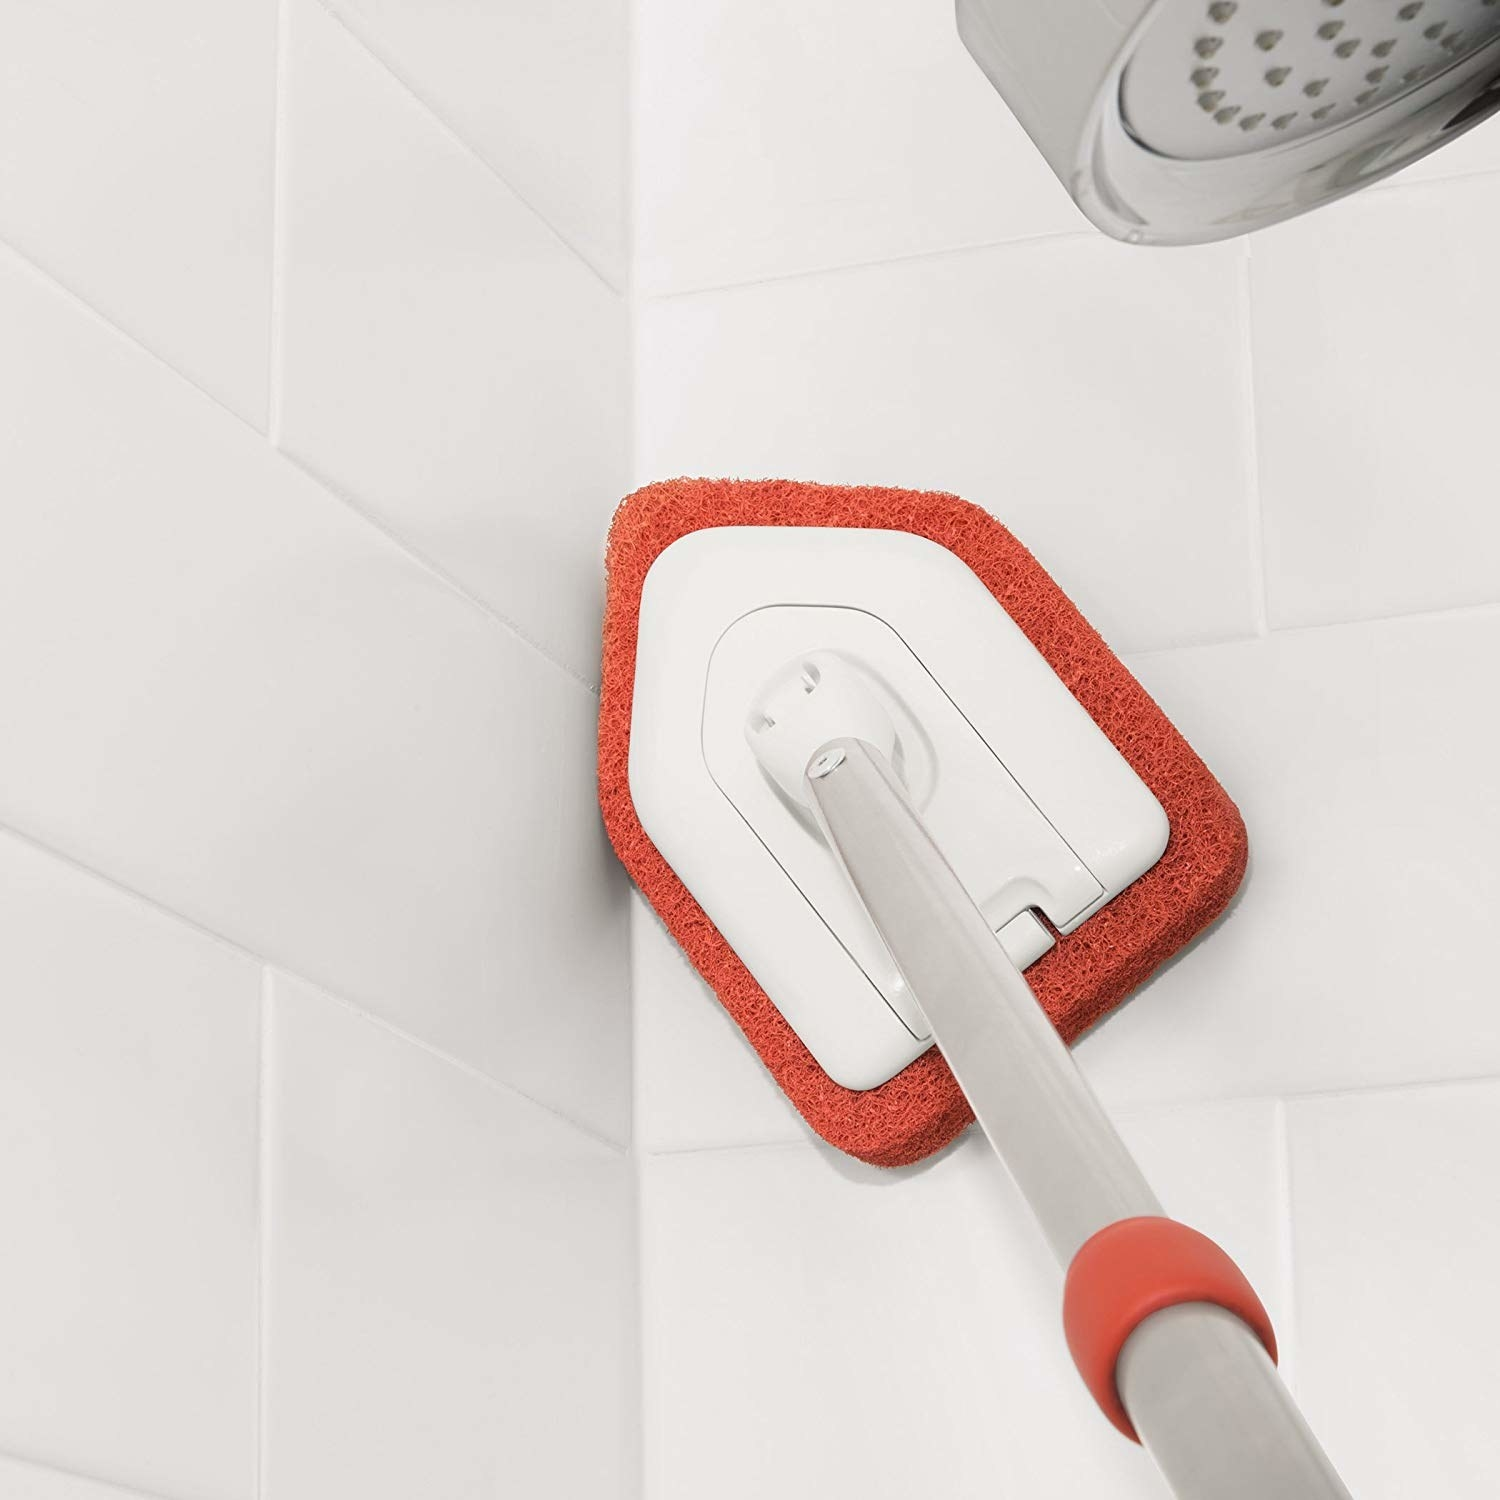 the pointy-front scrubber in a tile corner